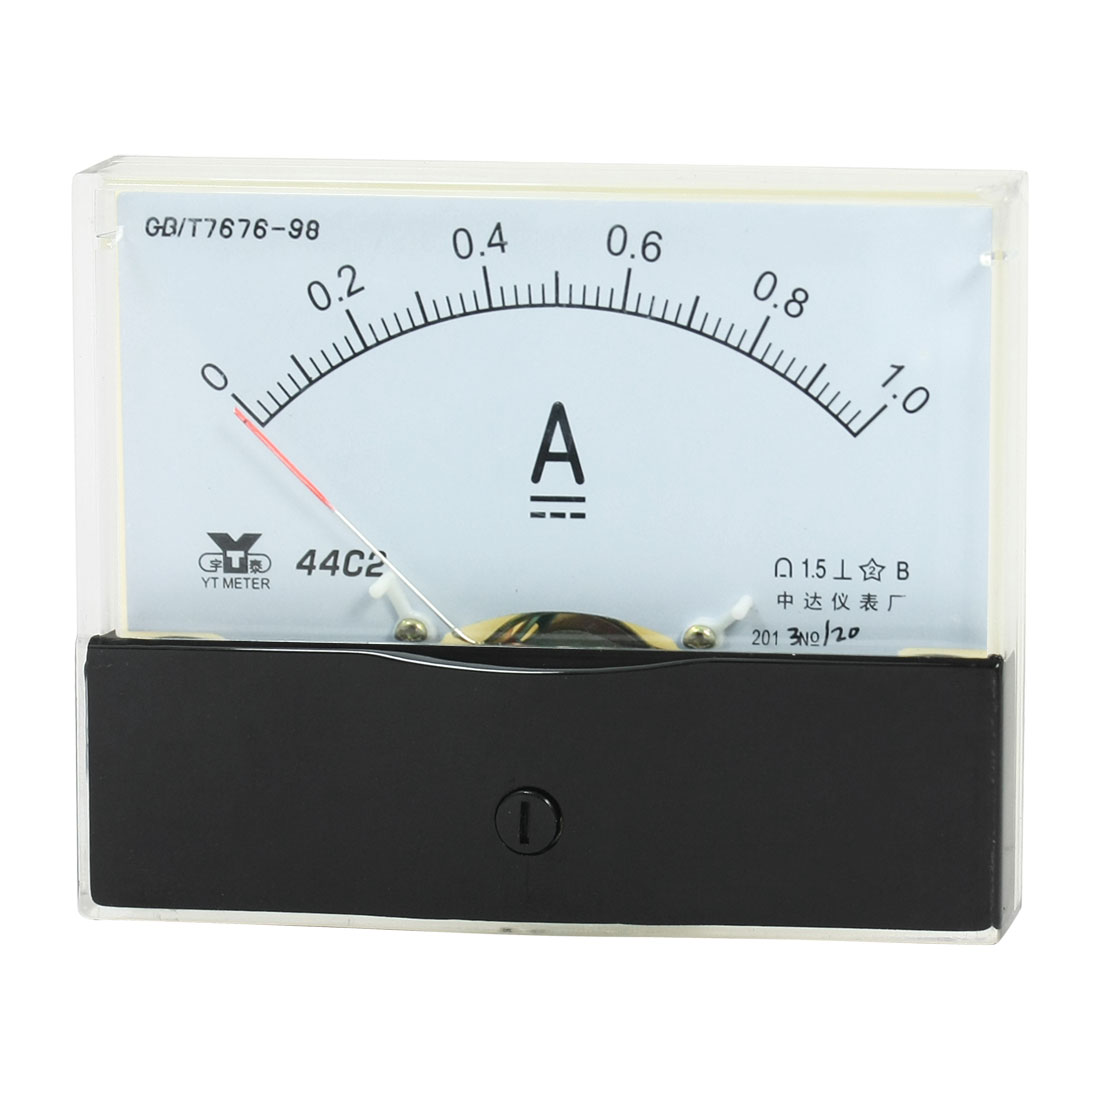 Rectangle Measurement Tool Analog Panel Ammeter Gauge DC 0 - 1A Measuring Range 44C2